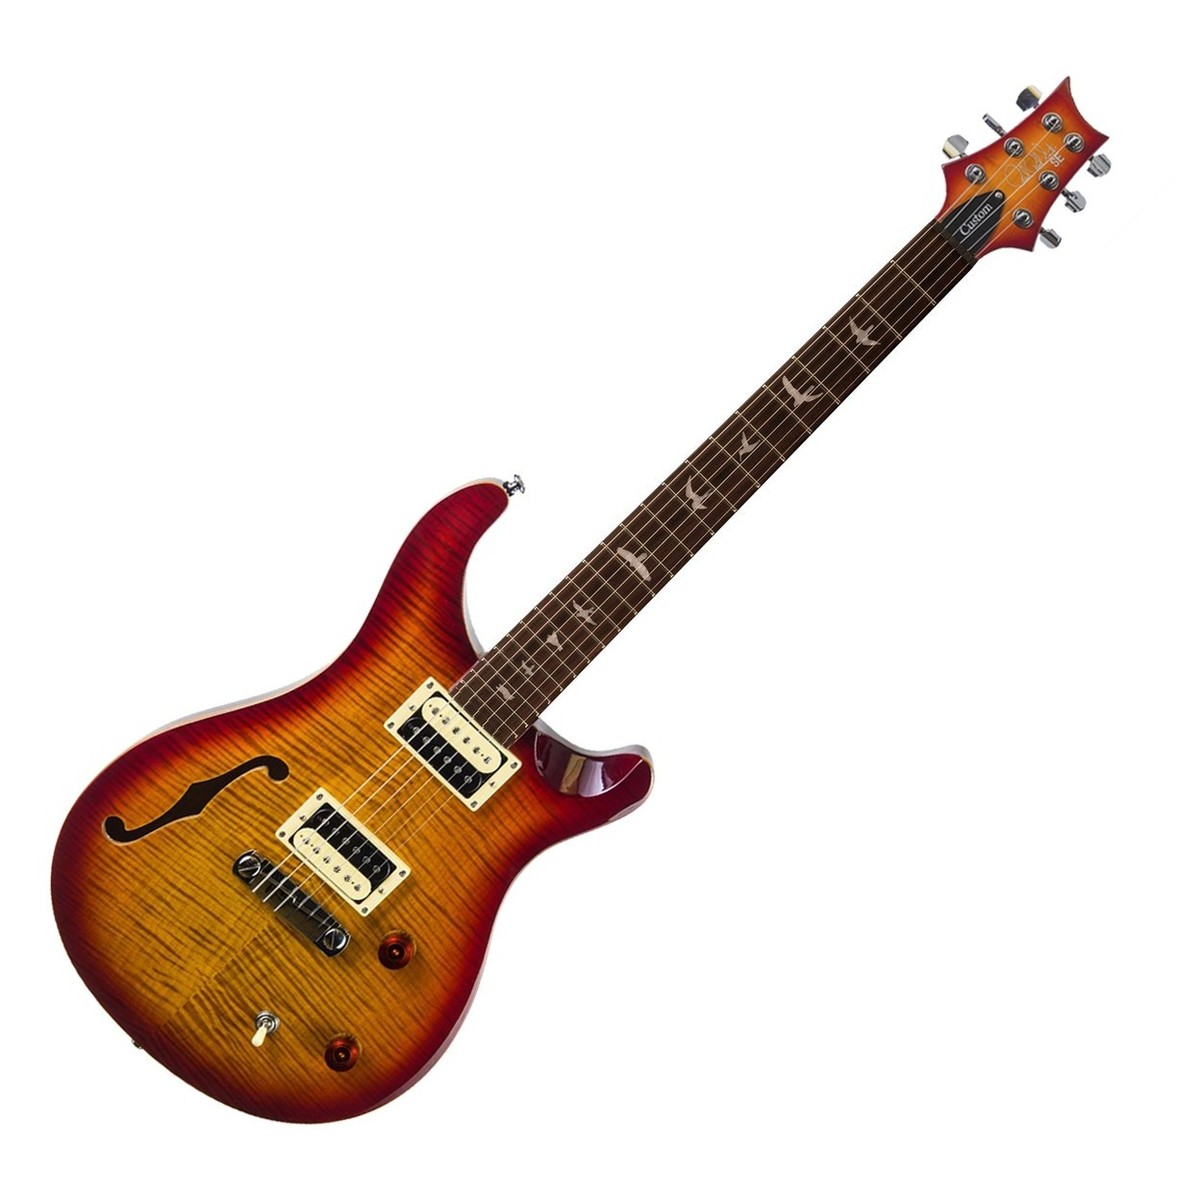 prs se custom 22 semi hollow electric guitar dark cherry burst at. Black Bedroom Furniture Sets. Home Design Ideas